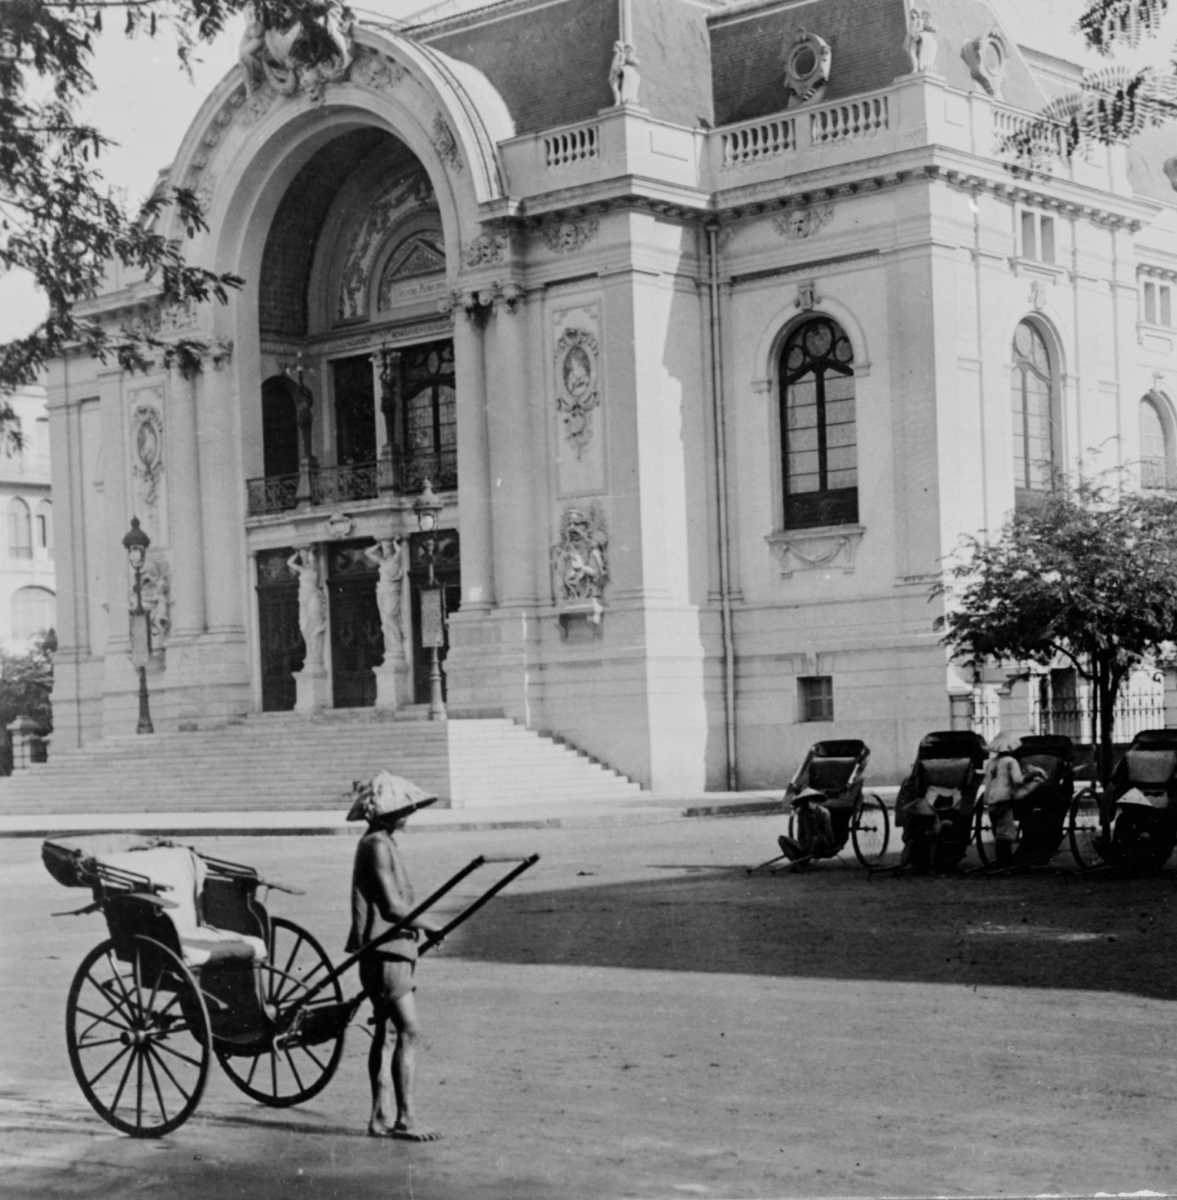 Saigon Opera House in the Early 1900s